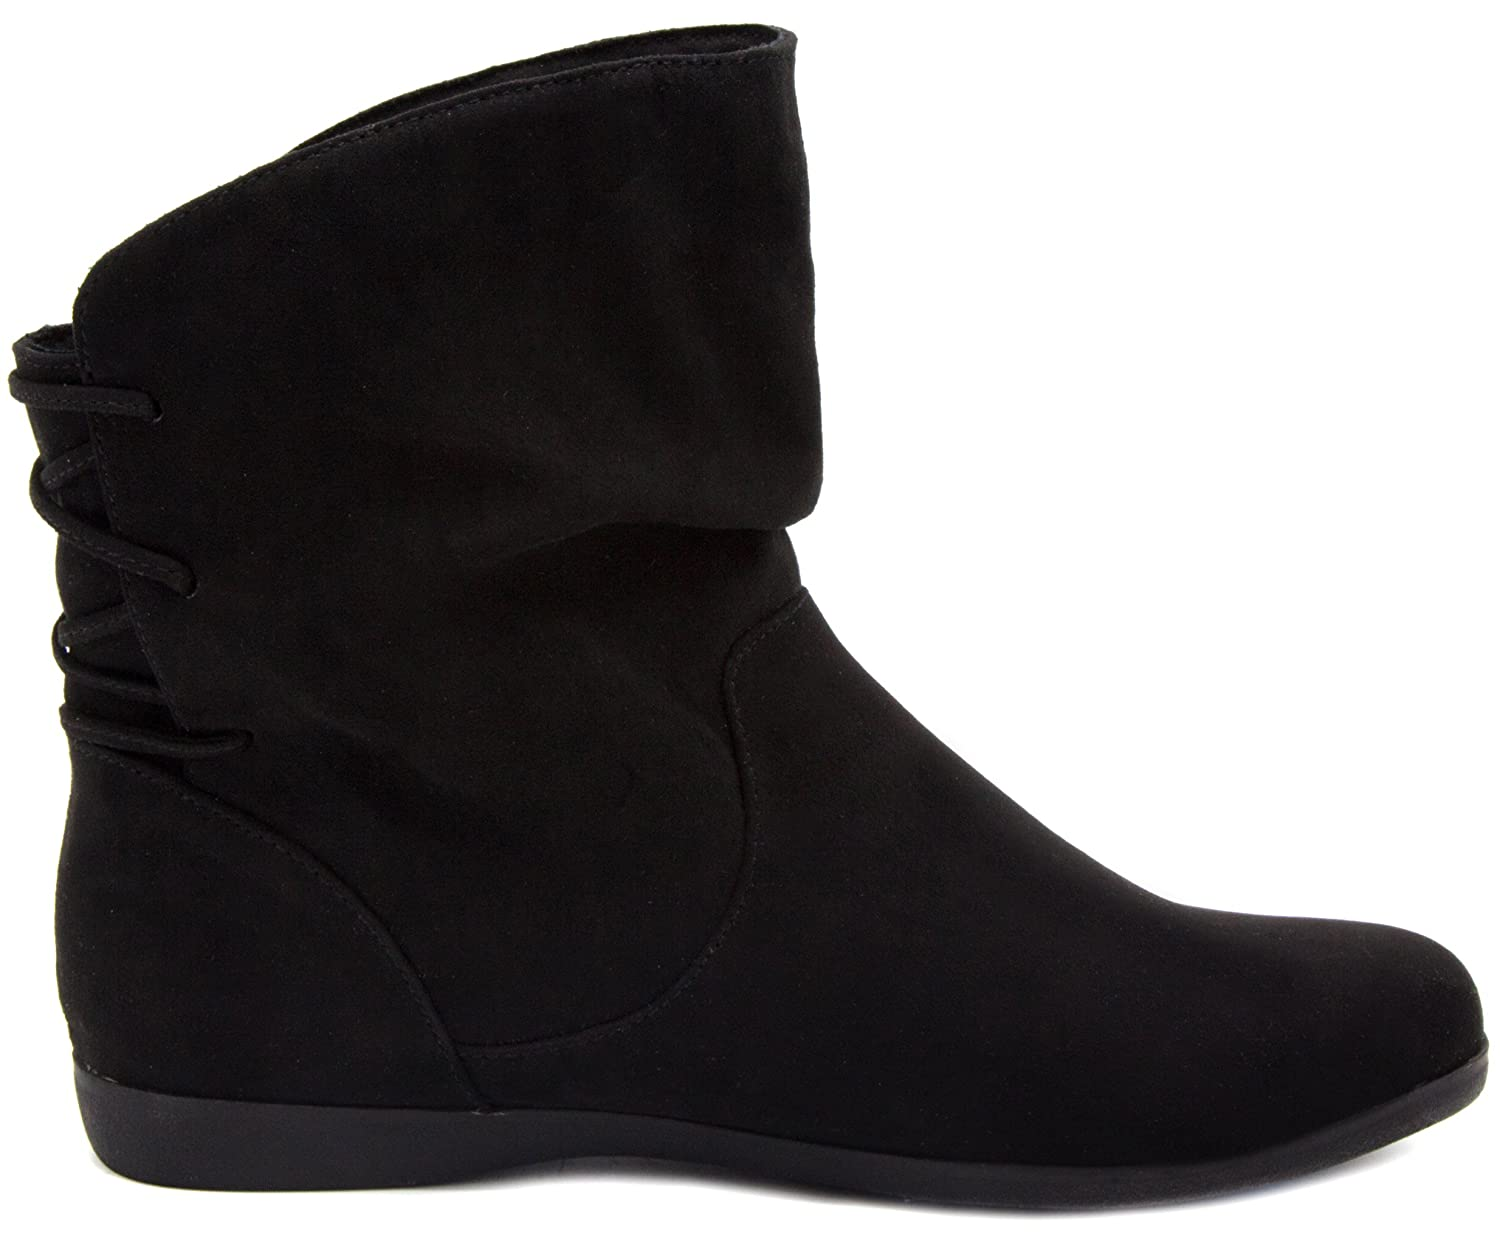 08c2adf635736 Sugar Women's Brooke Slouched Flat Ankle Boot Bootie